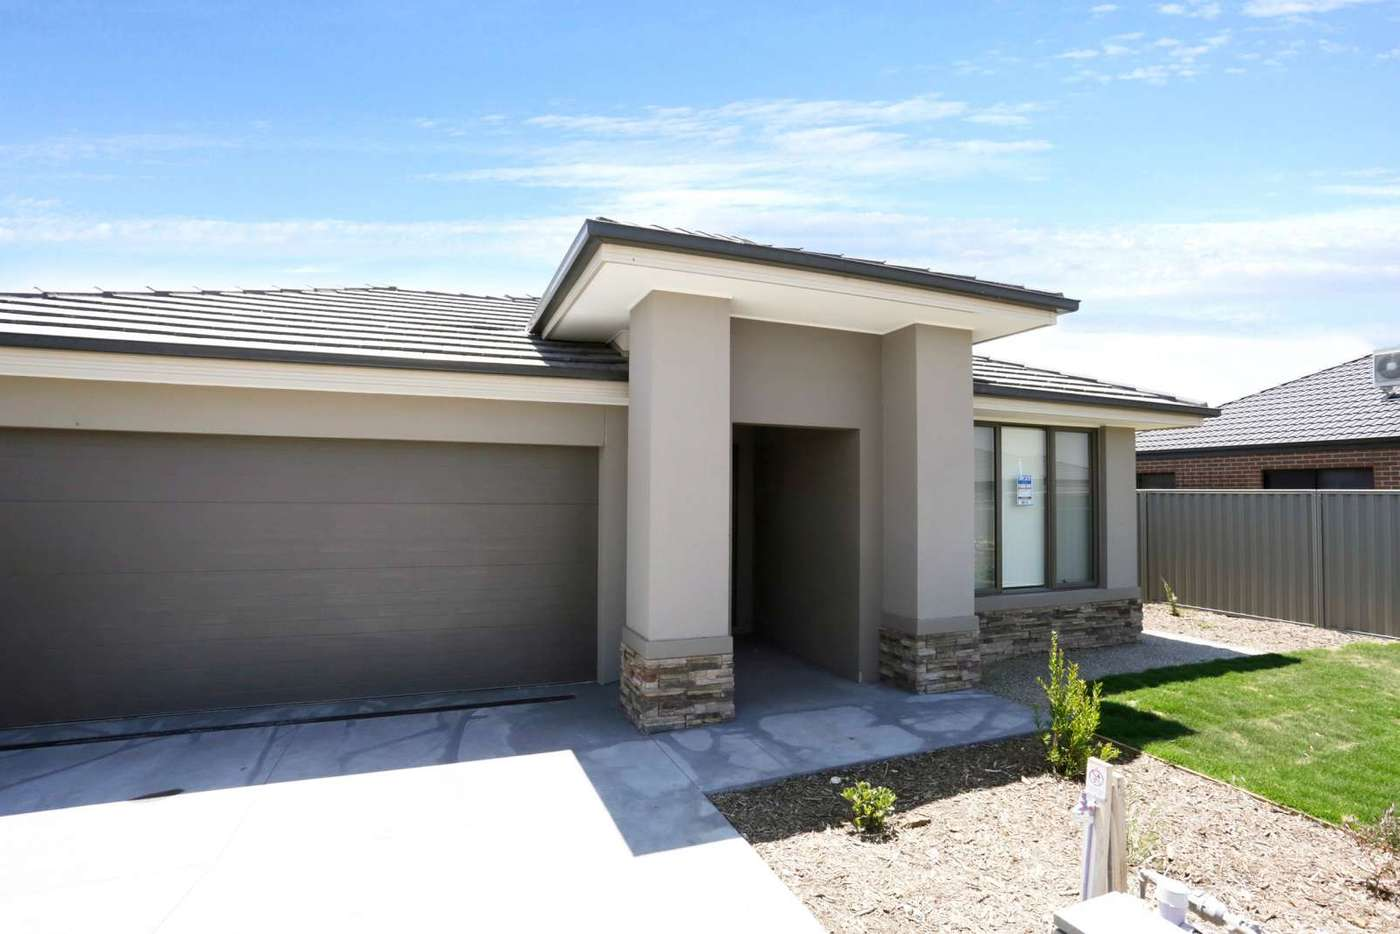 Main view of Homely house listing, 11 Rupert Street, Cranbourne East VIC 3977